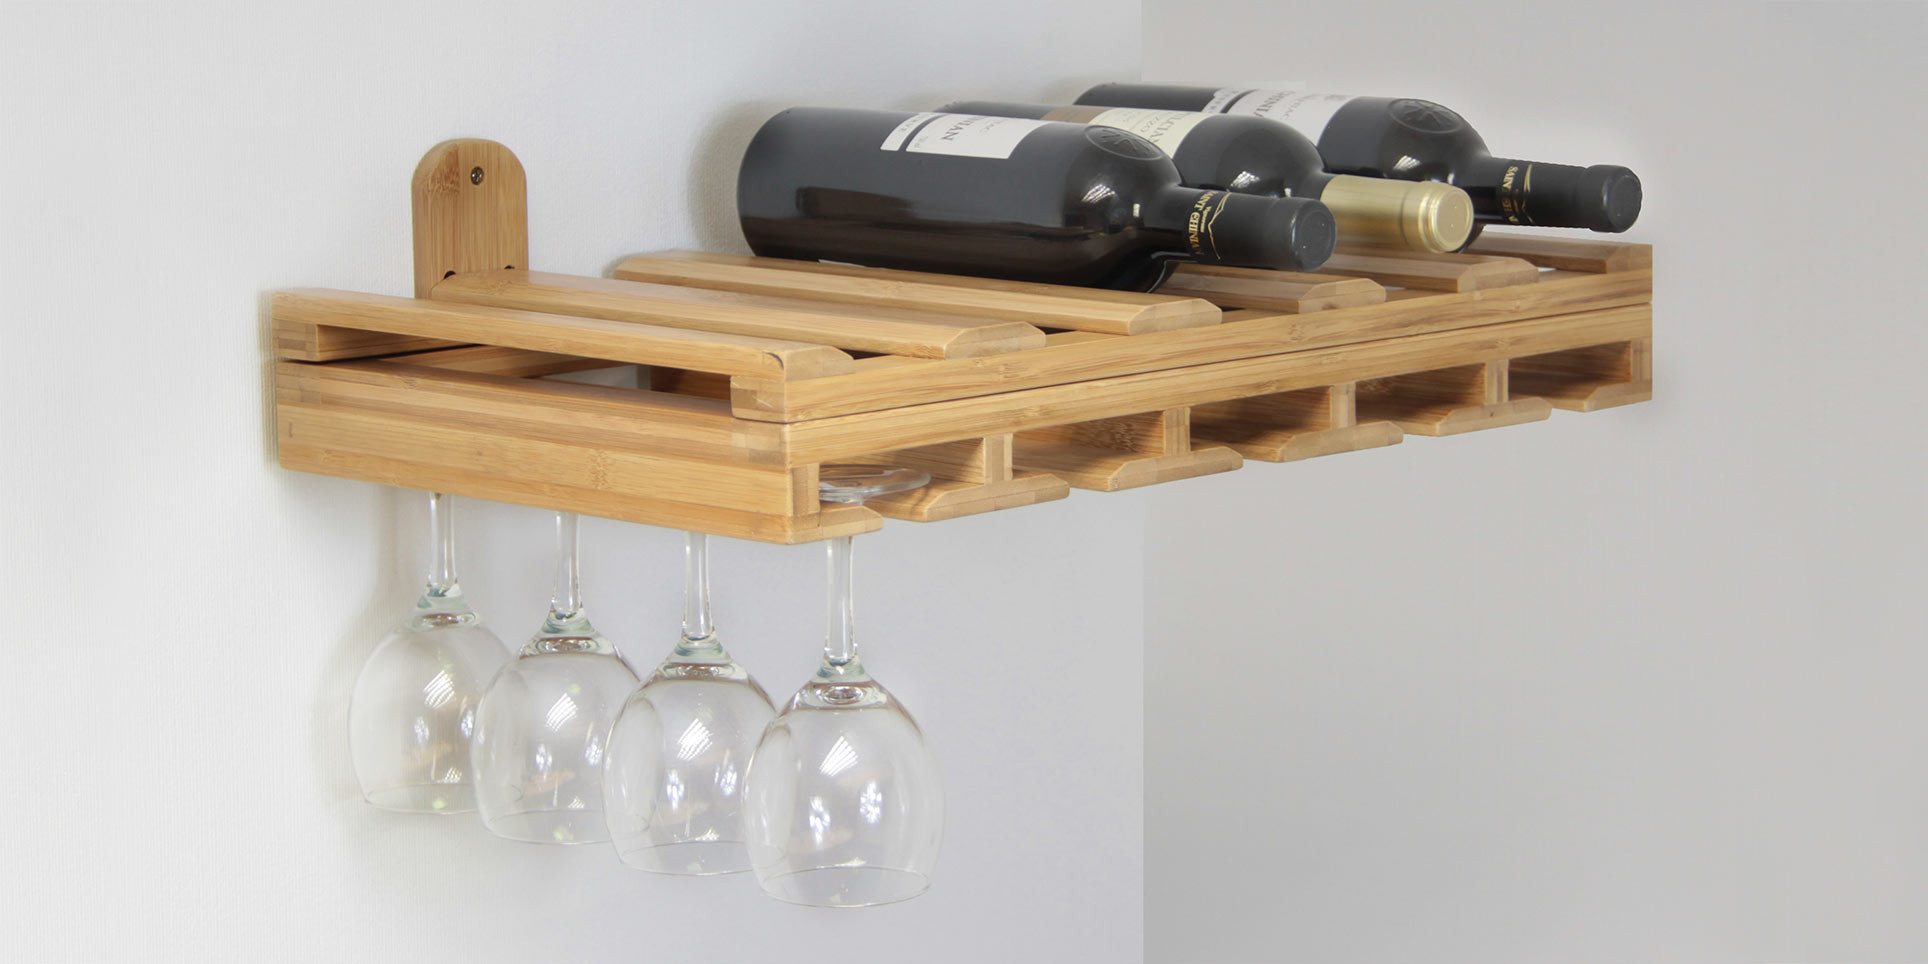 wine glasses bottles holder bamboo kitchen storage. Black Bedroom Furniture Sets. Home Design Ideas